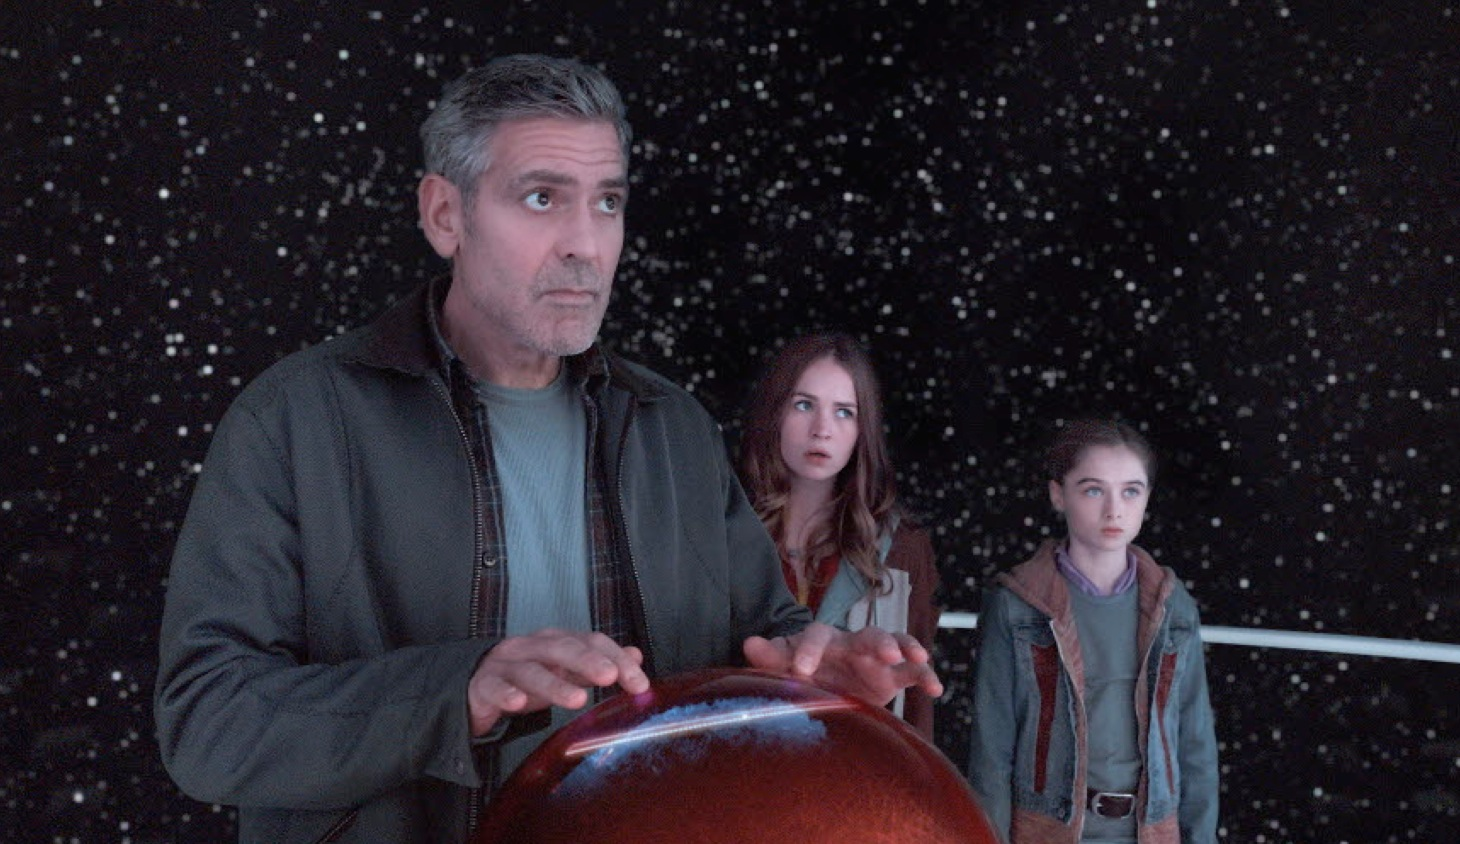 Clooney gets unexpected �Tomorrowland� love interest | USA Entertainment Now